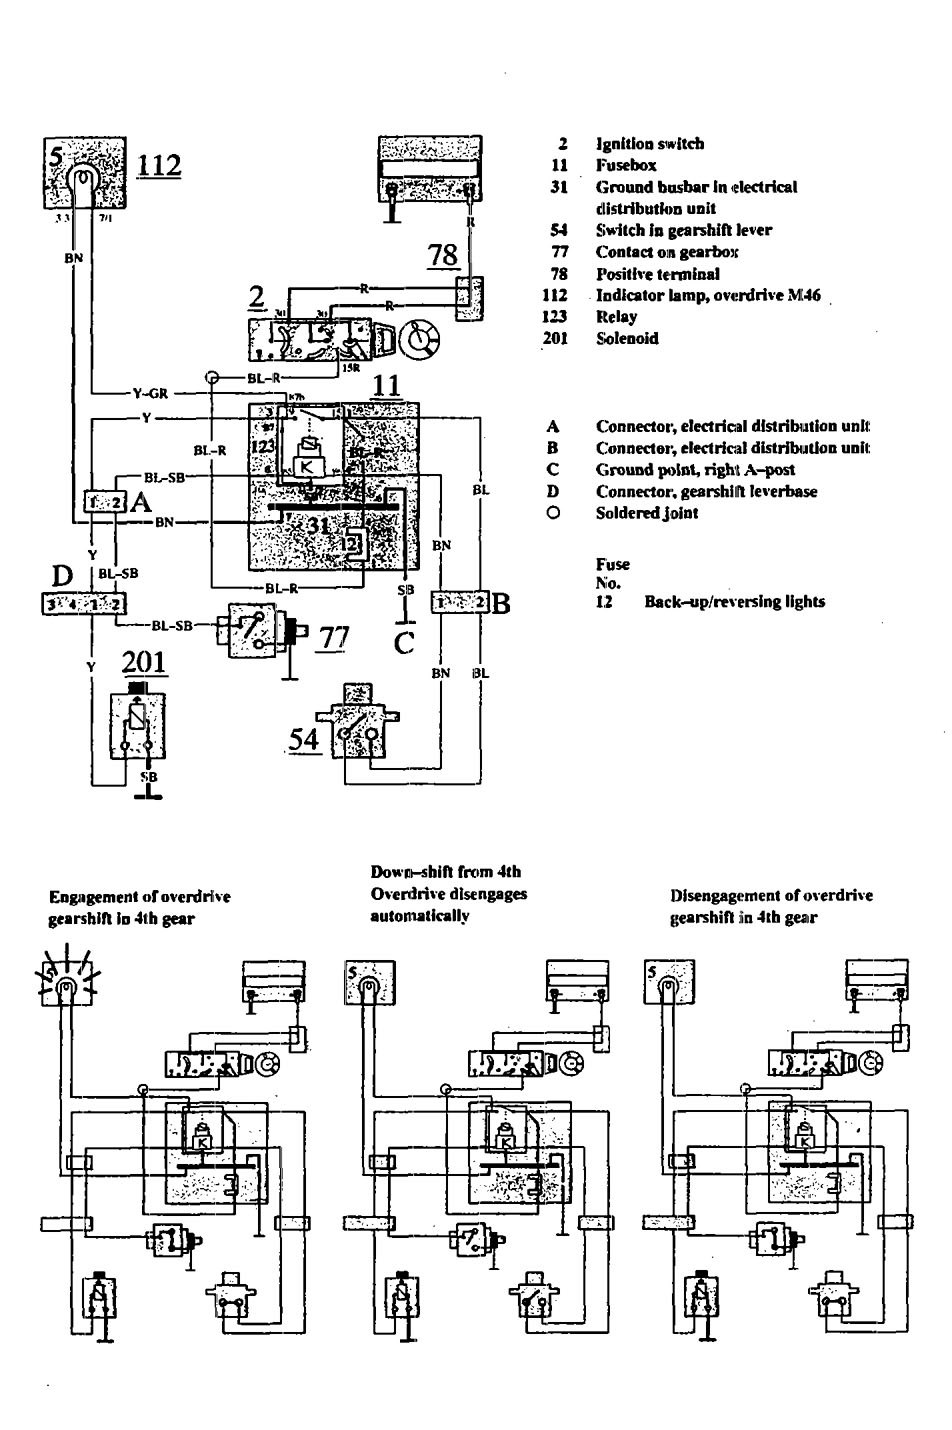 Volvo 940 Wagon 1993 Overdrive Fuse Diagram Books Of Wiring 960 1997 Fuel Filter Location Data